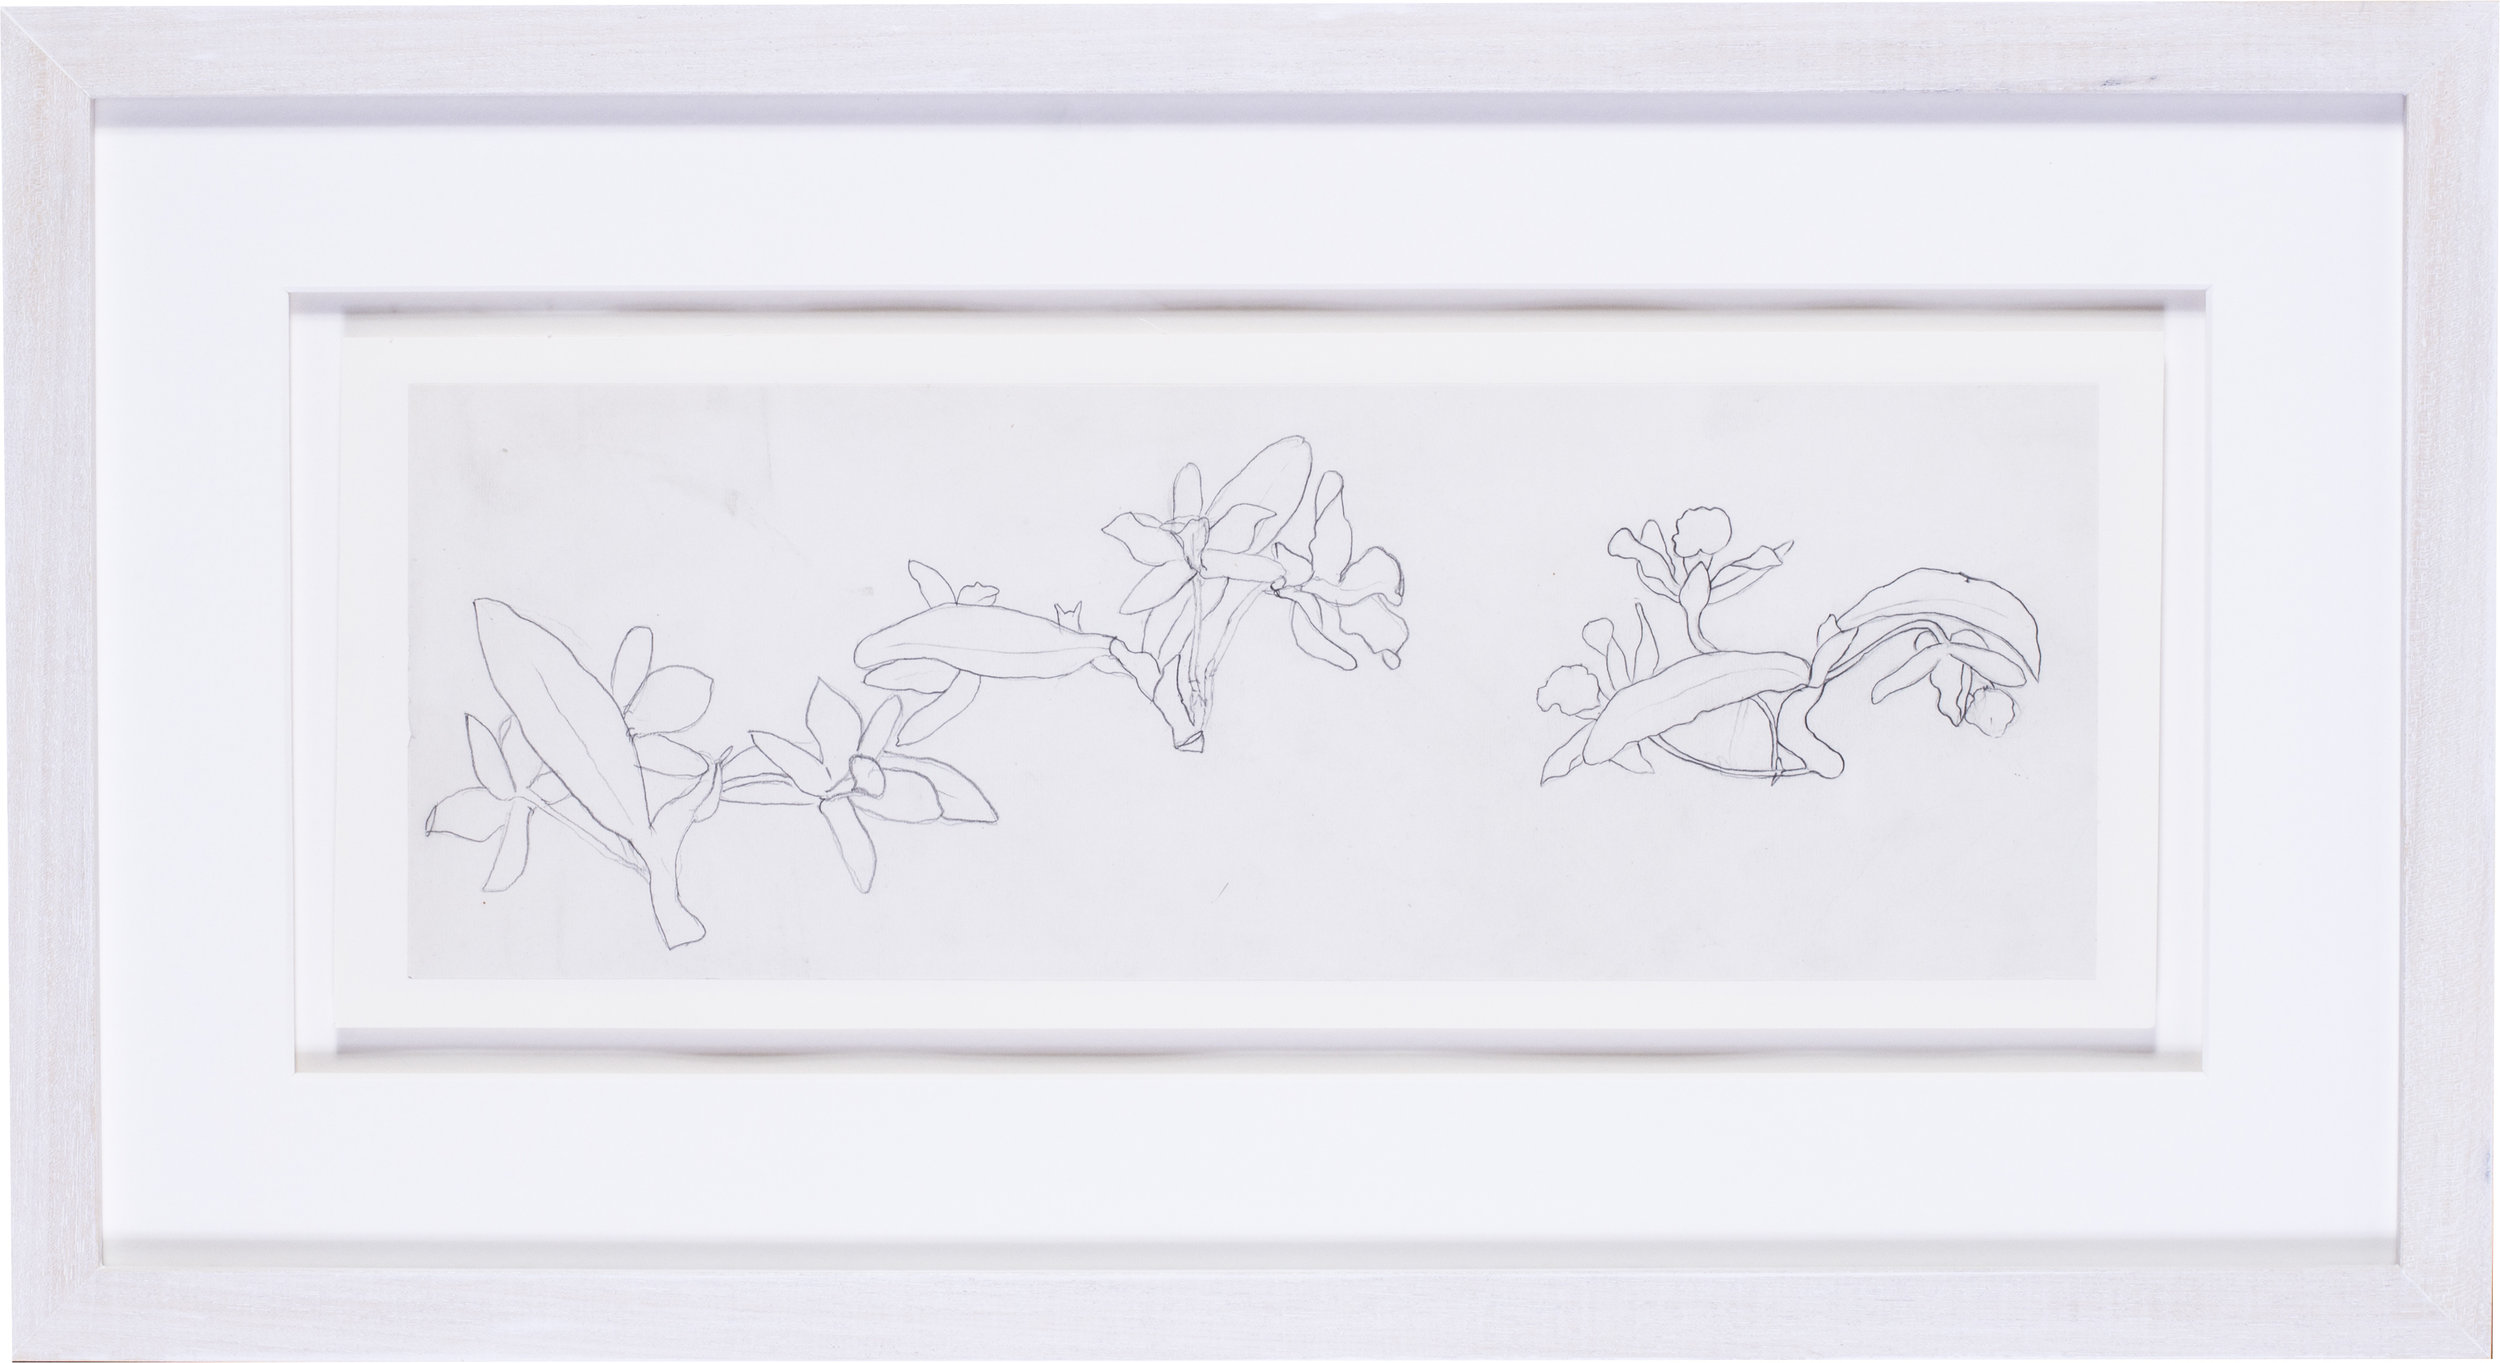 Narcissi    pencil on paper  5.1/2 x 15 in. (14 x 38 cm.)  Provenance: The Clayton-Stamm Collection.  Dominic Winter, Cirencester, 8thNovember 2018, lot 464  £1,400